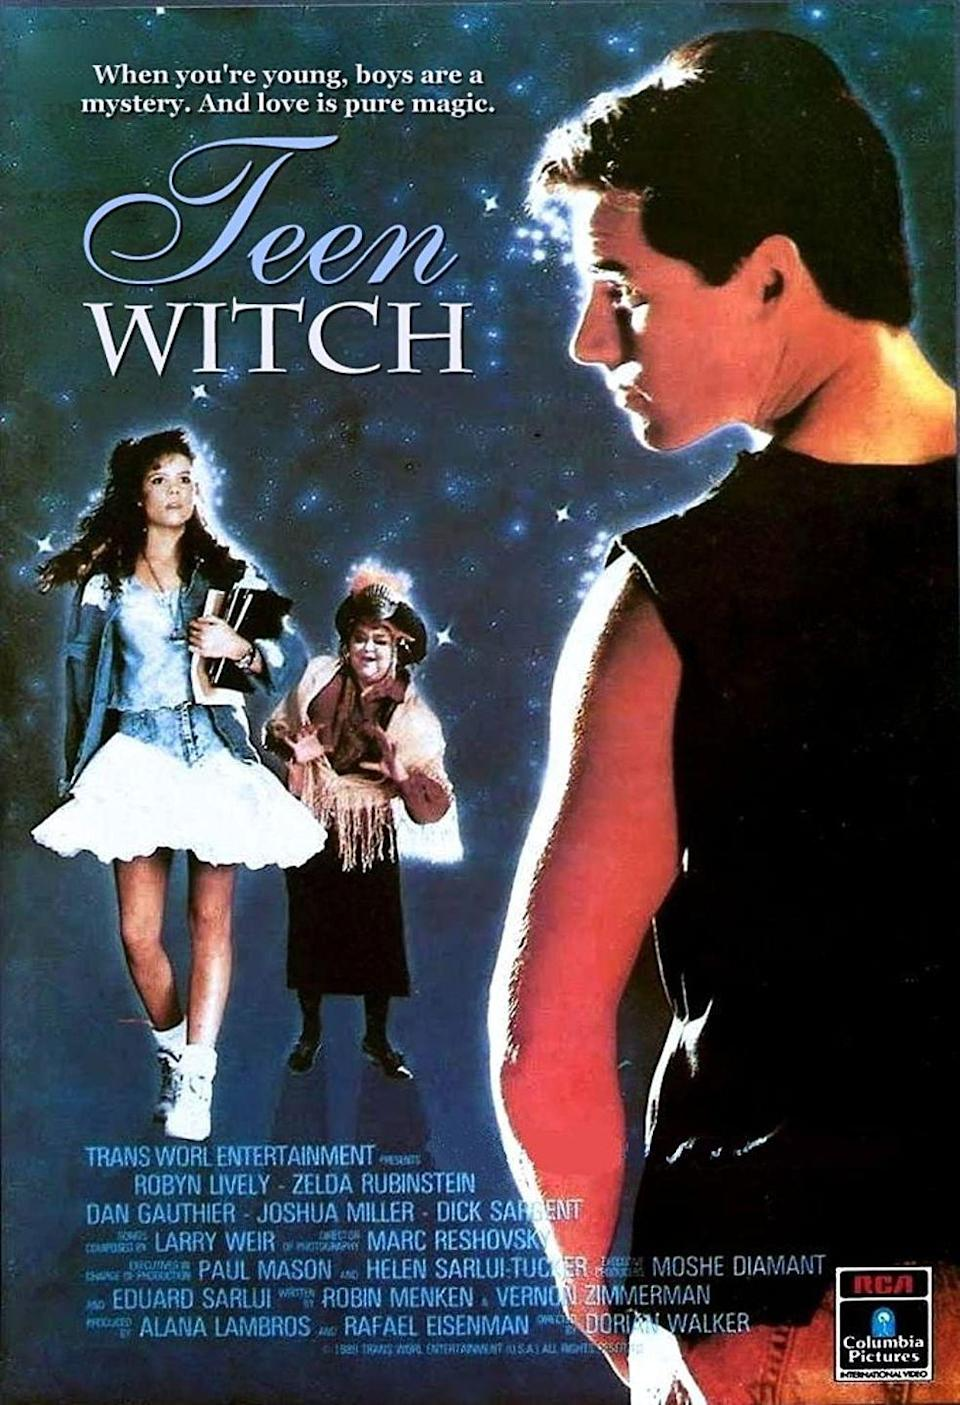 """<p>Travel back in time to 1989 when the bangs were tall and <em>Sabrina the Teen Witch</em> was barely yet a glimmer. <em>Teen Witch</em> tells the story of a nerdy high schooler who learns from a psychic that she's got magical powers set to begin working on her 16th birthday. And it turns out to be true.</p><p><a class=""""link rapid-noclick-resp"""" href=""""https://www.amazon.com/Teen-Witch-Robyn-Lively/dp/B07P5KM61W?tag=syn-yahoo-20&ascsubtag=%5Bartid%7C10070.g.37360837%5Bsrc%7Cyahoo-us"""" rel=""""nofollow noopener"""" target=""""_blank"""" data-ylk=""""slk:WATCH NOW"""">WATCH NOW</a></p>"""